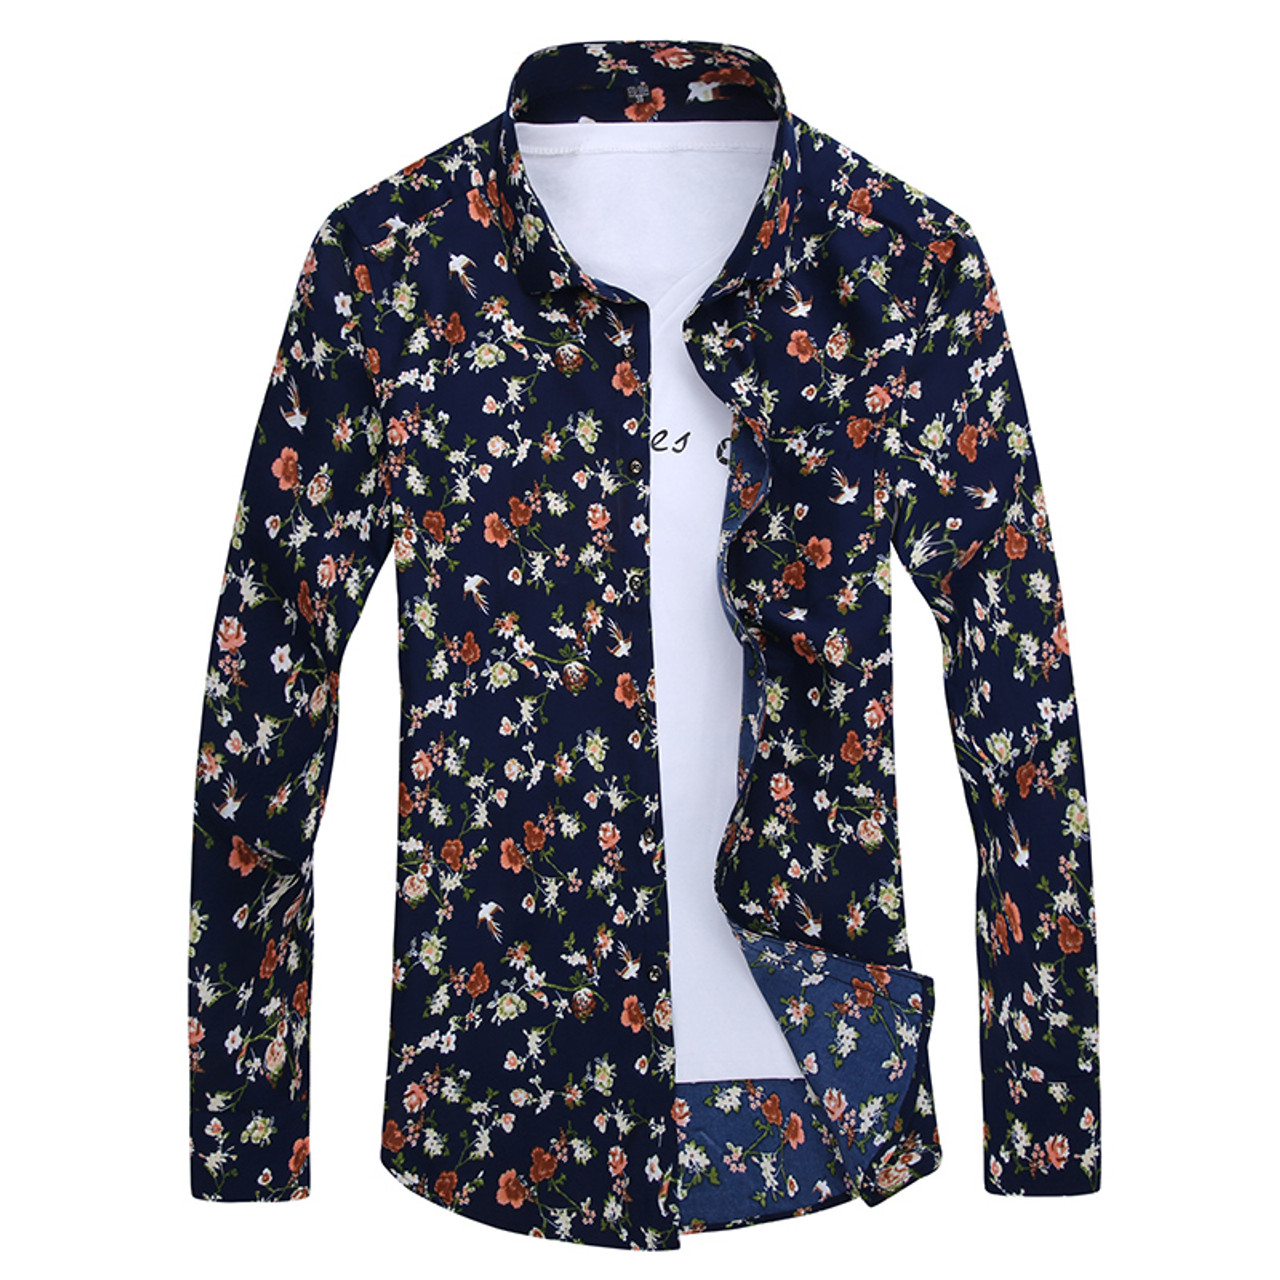 3c9429d99d1 ... 2018 Retro Floral Printed Man Casual Shirts Fashion Classic Men Dress  Shirt Breathable Men s Long Sleeve ...